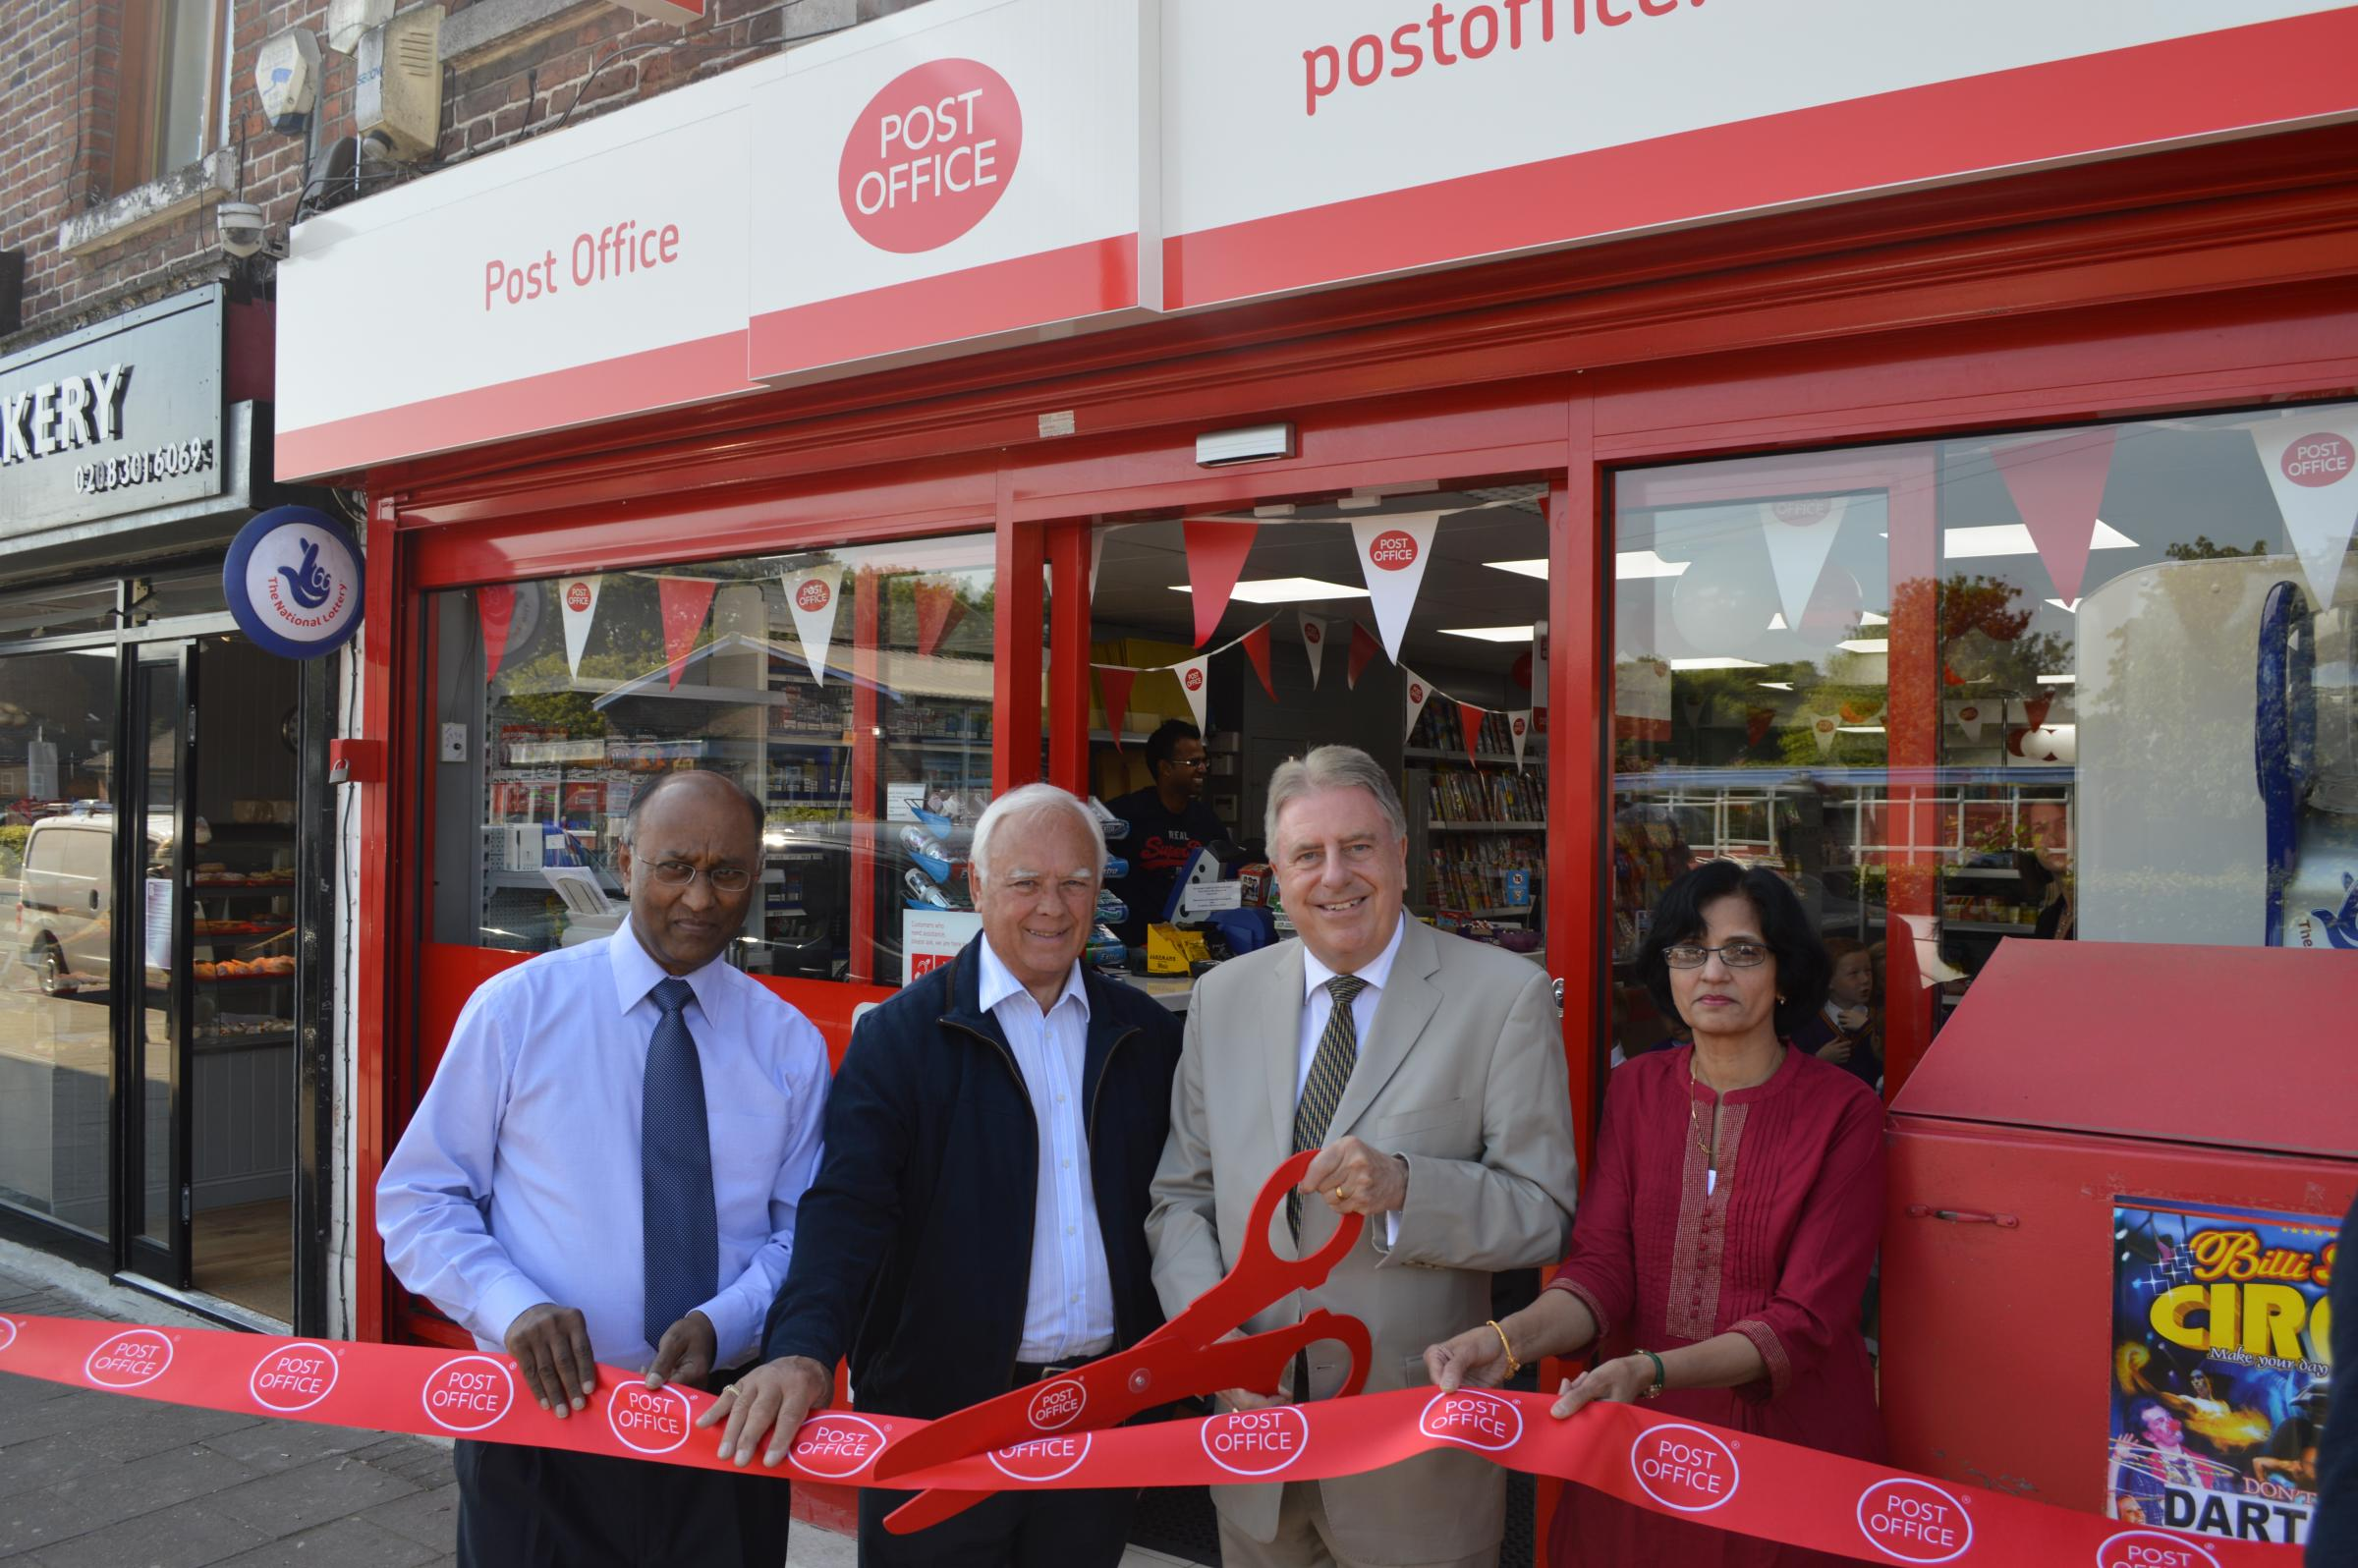 Mr Evennett revealed the updated store along with Dinker Patel, the owner, his wife and St Michael's ward Councillor Ray Sams.